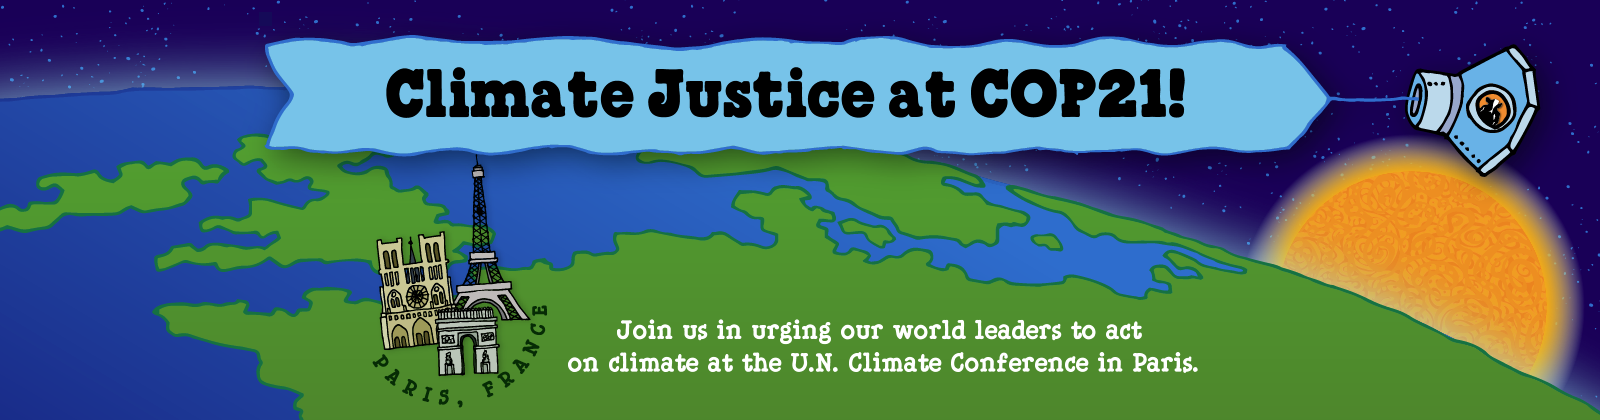 Join Ben & Jerry's and the world in urging world leaders to act on climate at UN Climate Conference in Paris